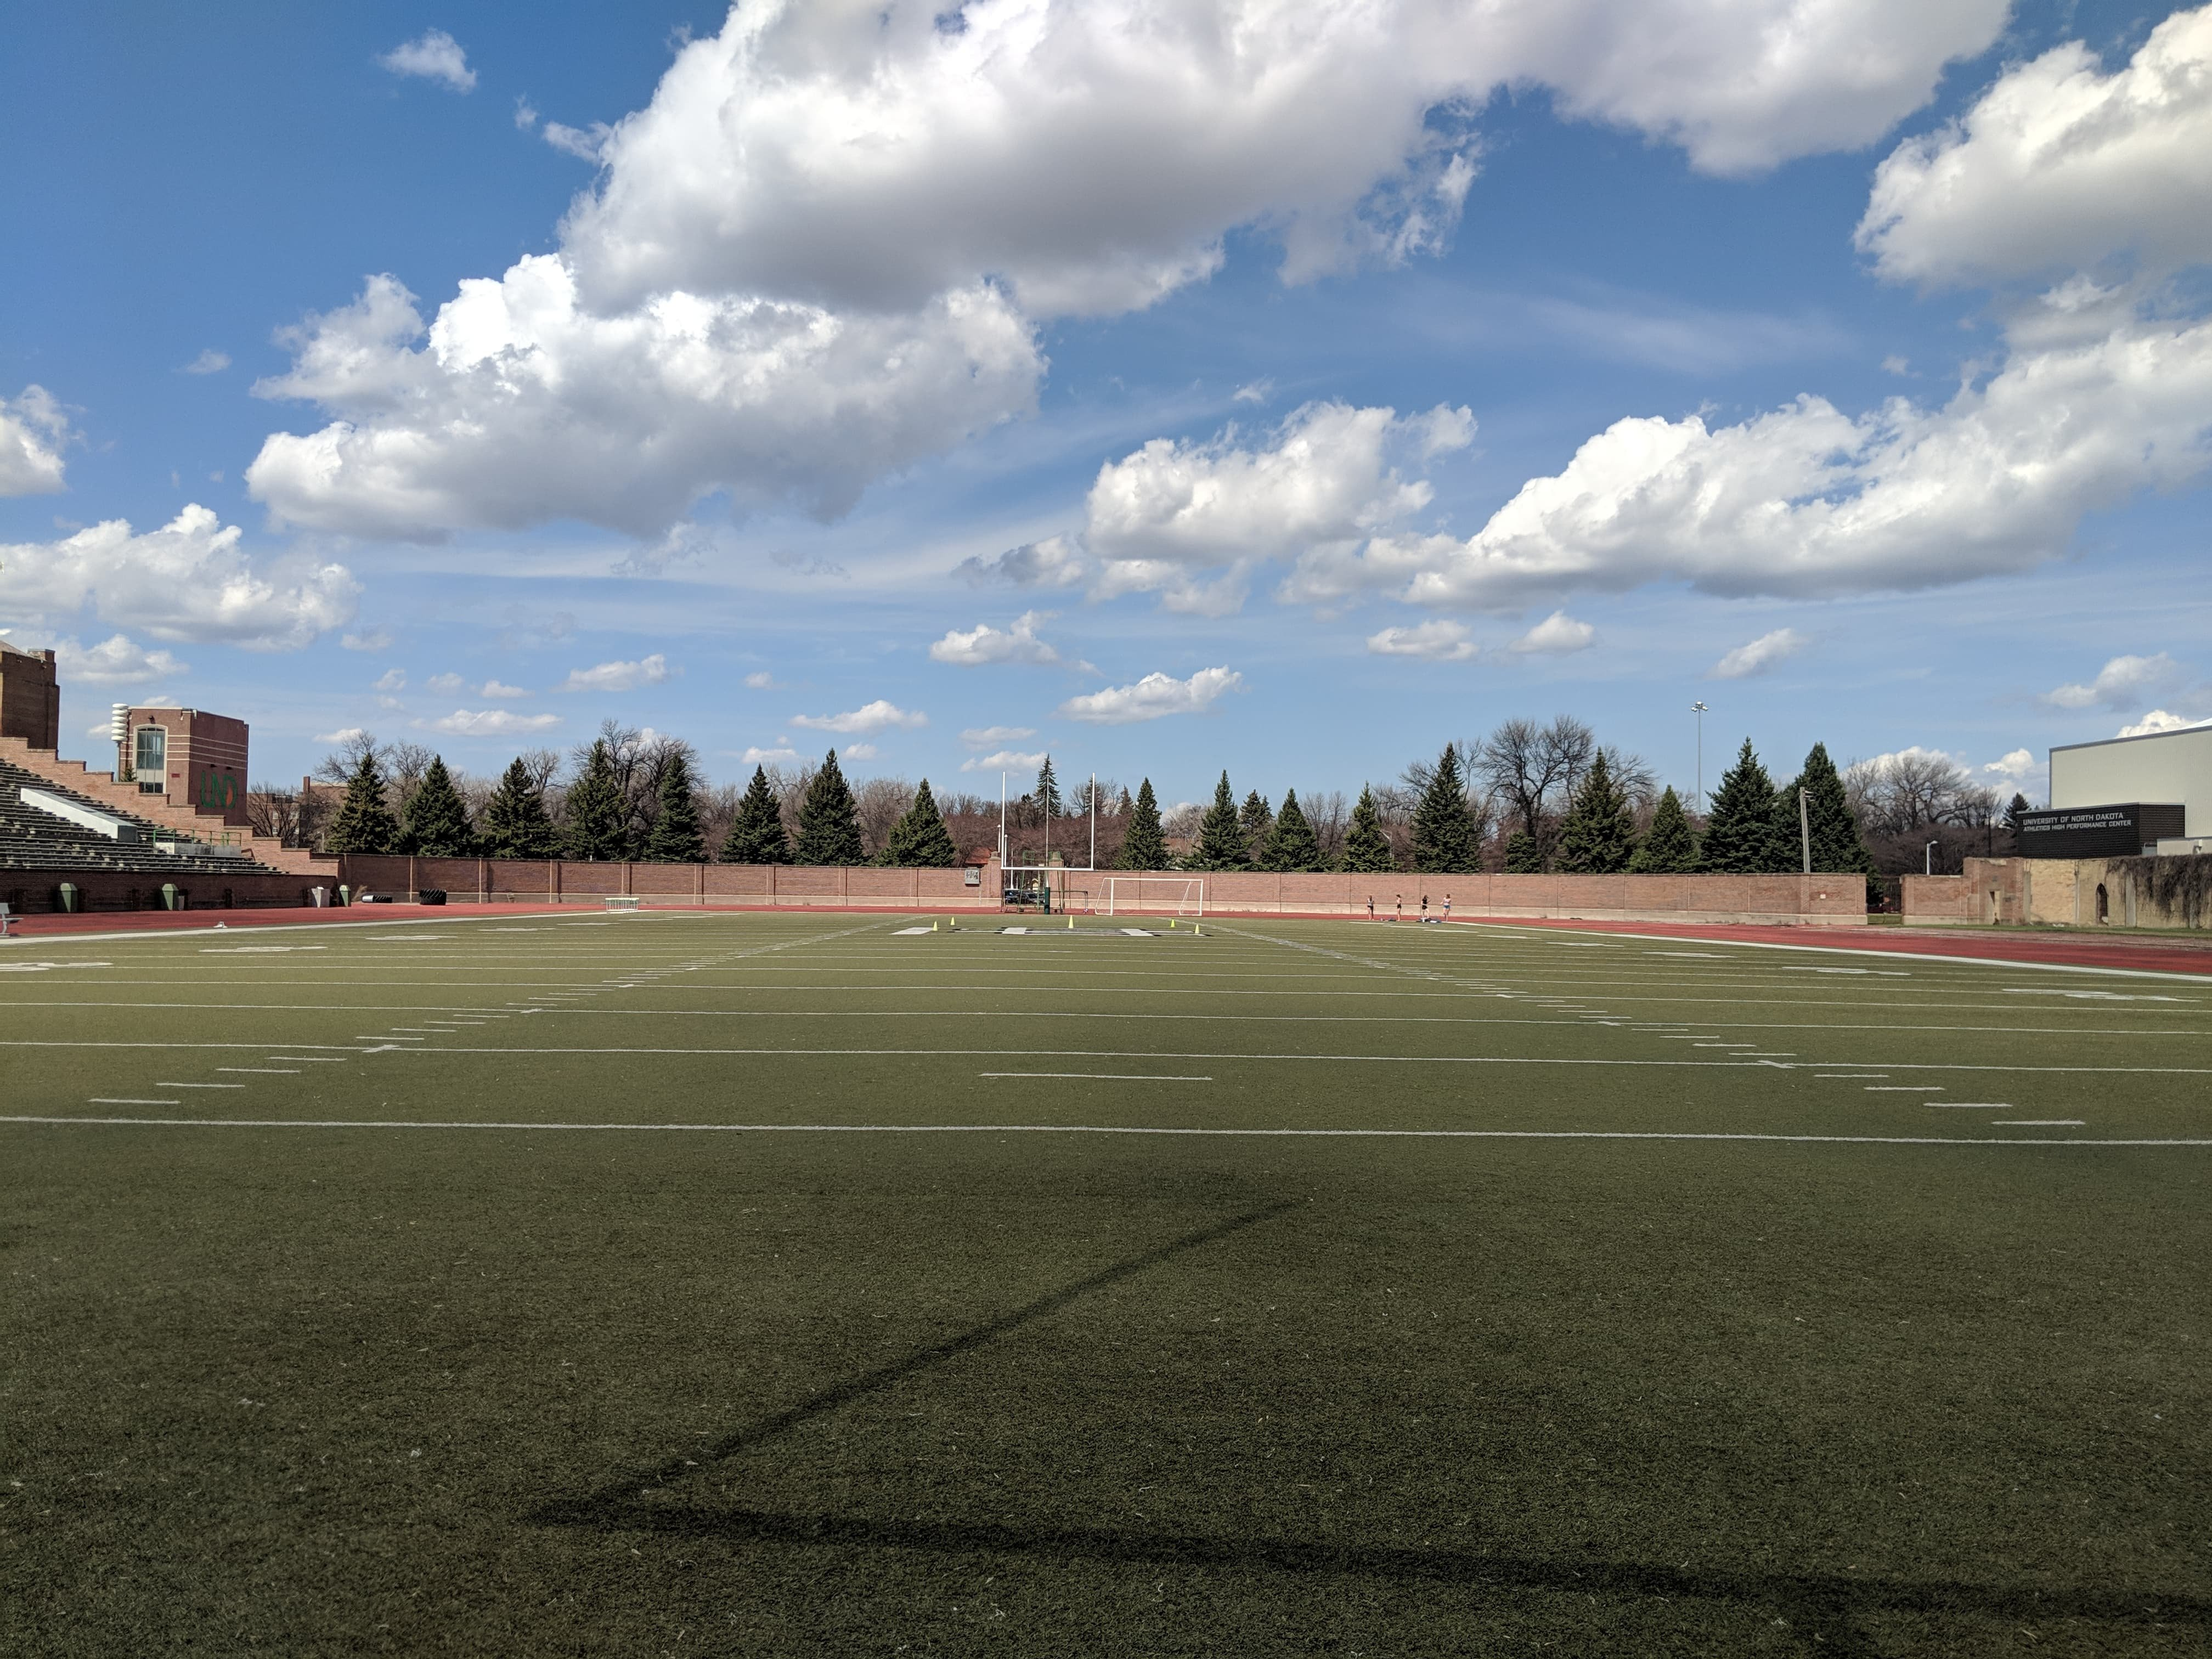 Ground level view of the turf from the south end of the field.